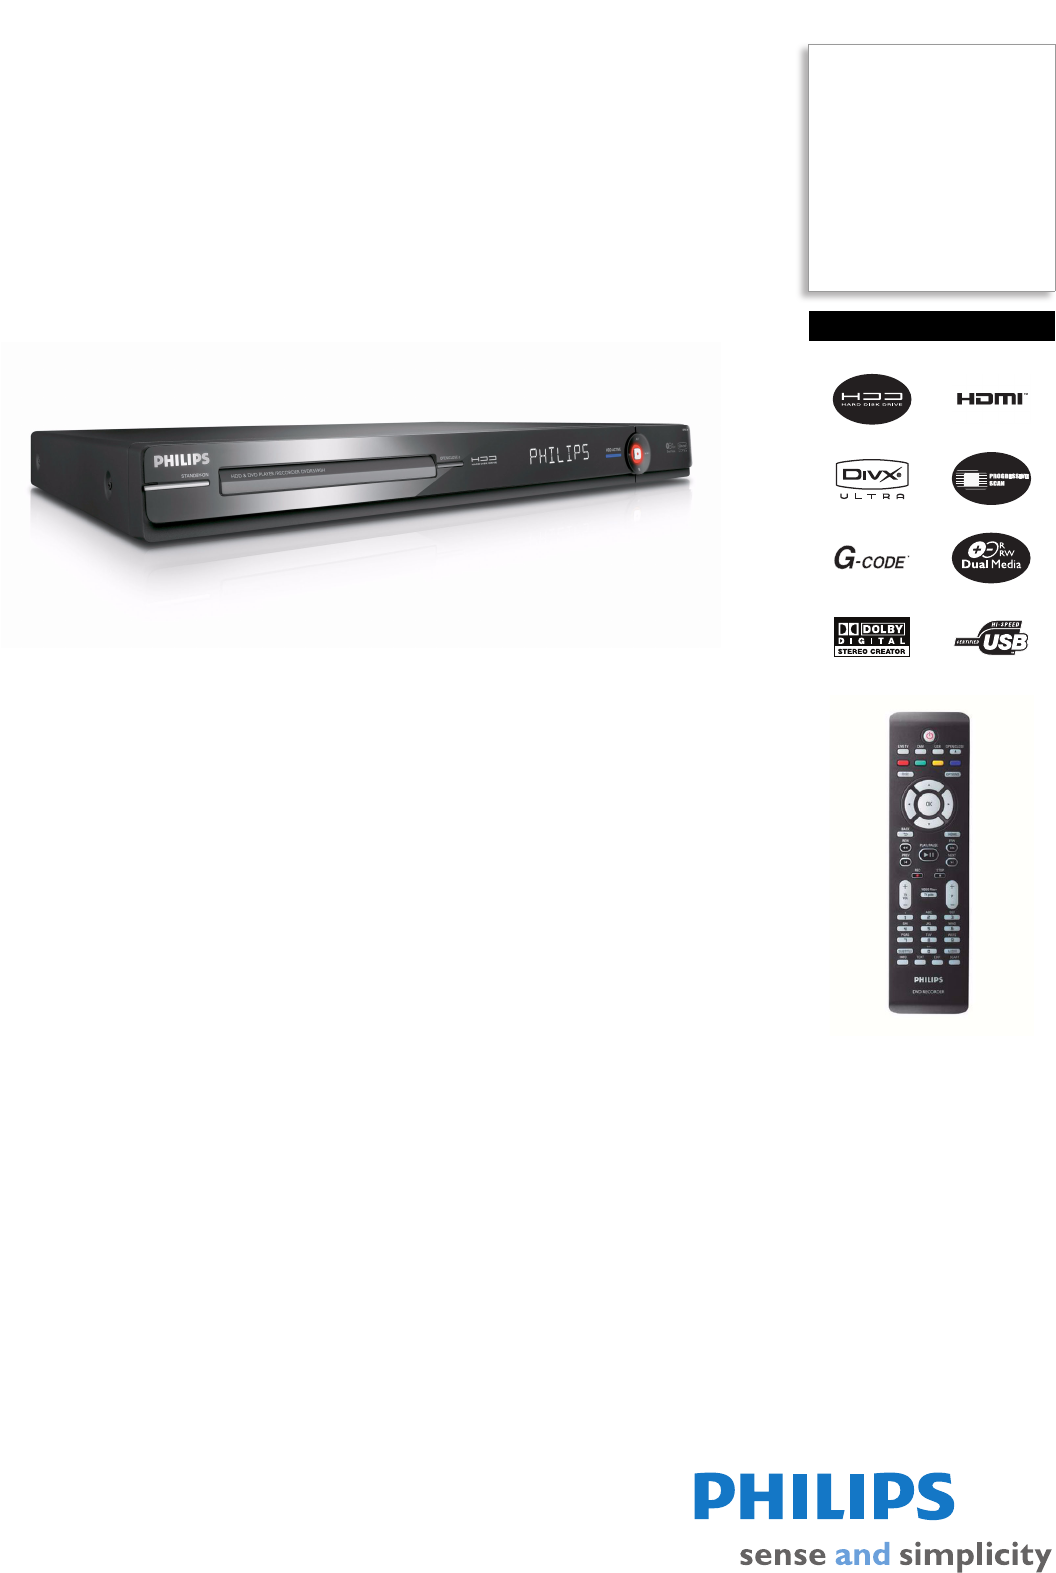 philips dvd recorder dvdr5590h user guide manualsonline com rh tv manualsonline com philips vhs dvd recorder manual philips dvdr615 dvd recorder manual